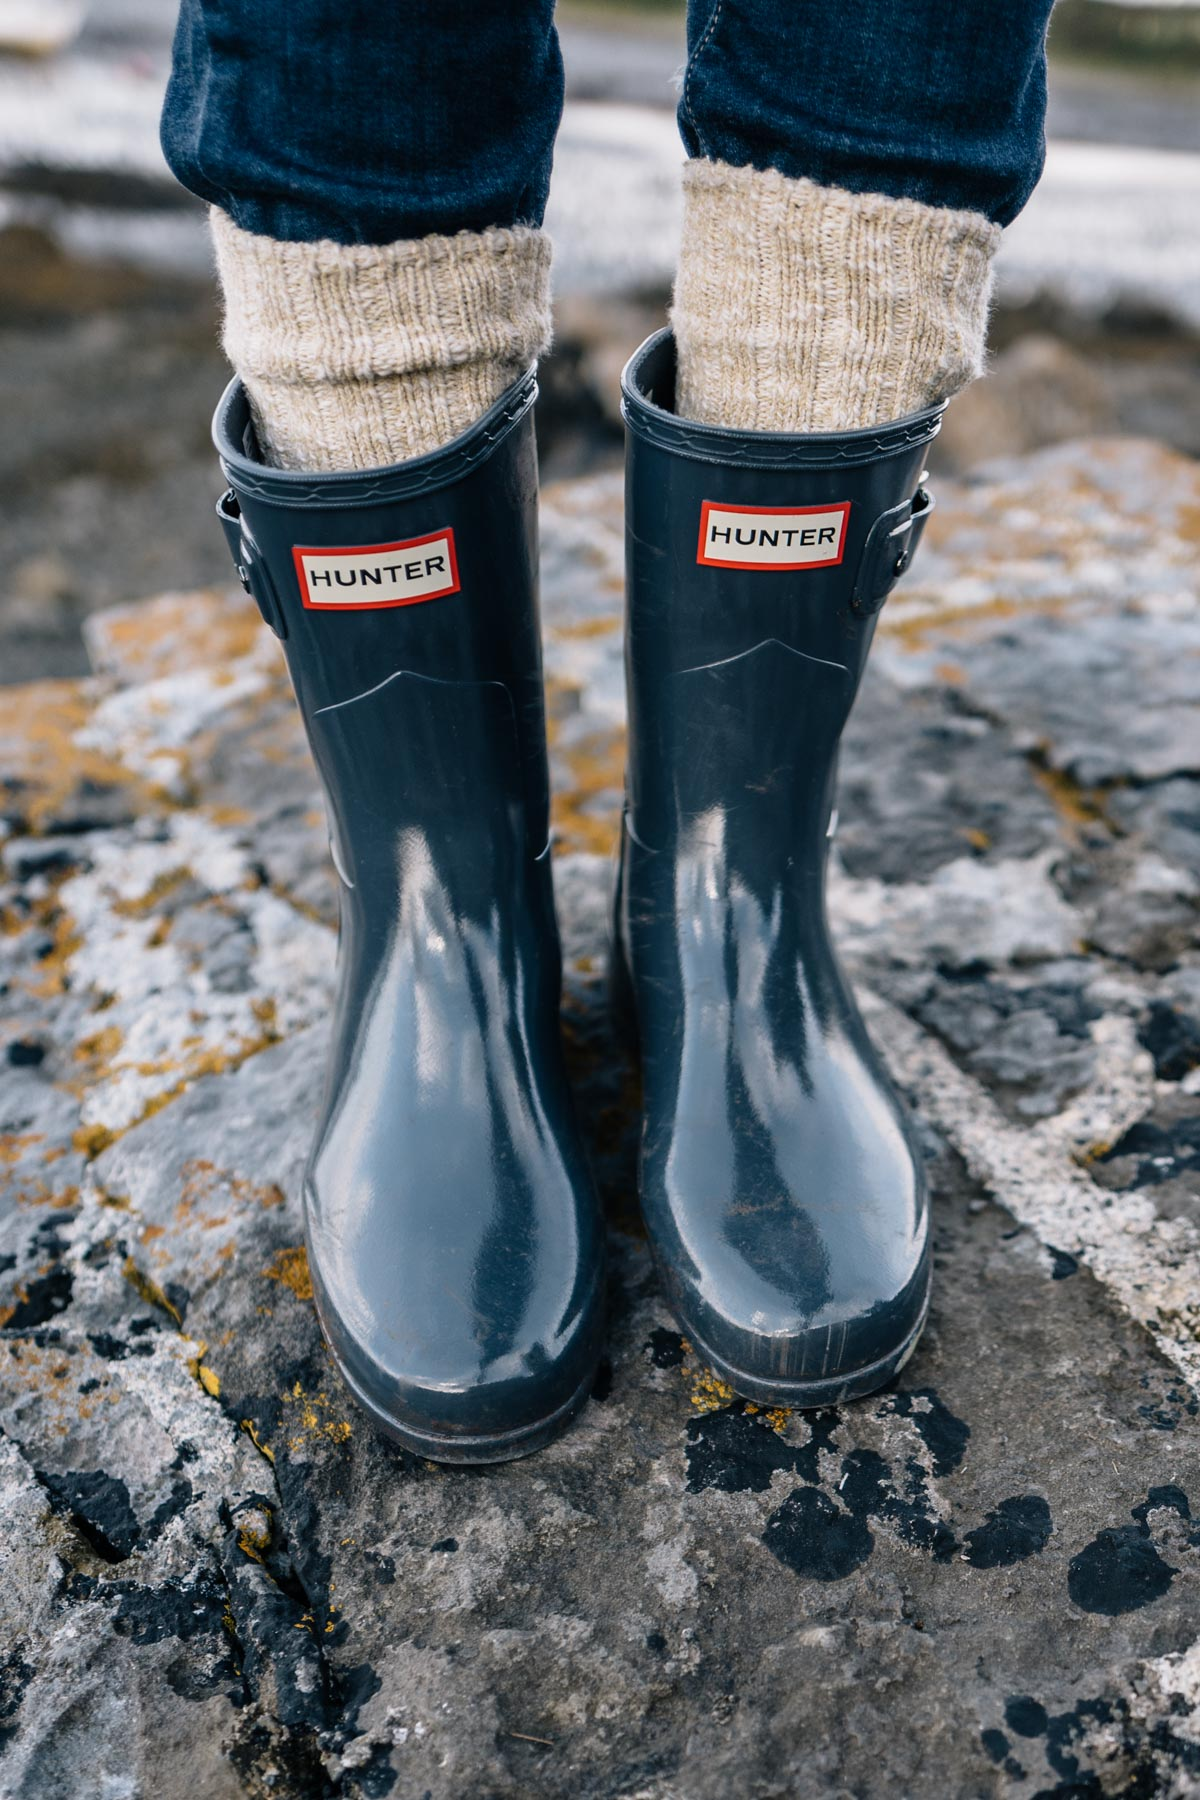 Hunter boots are the perfect shoe choice for Ireland